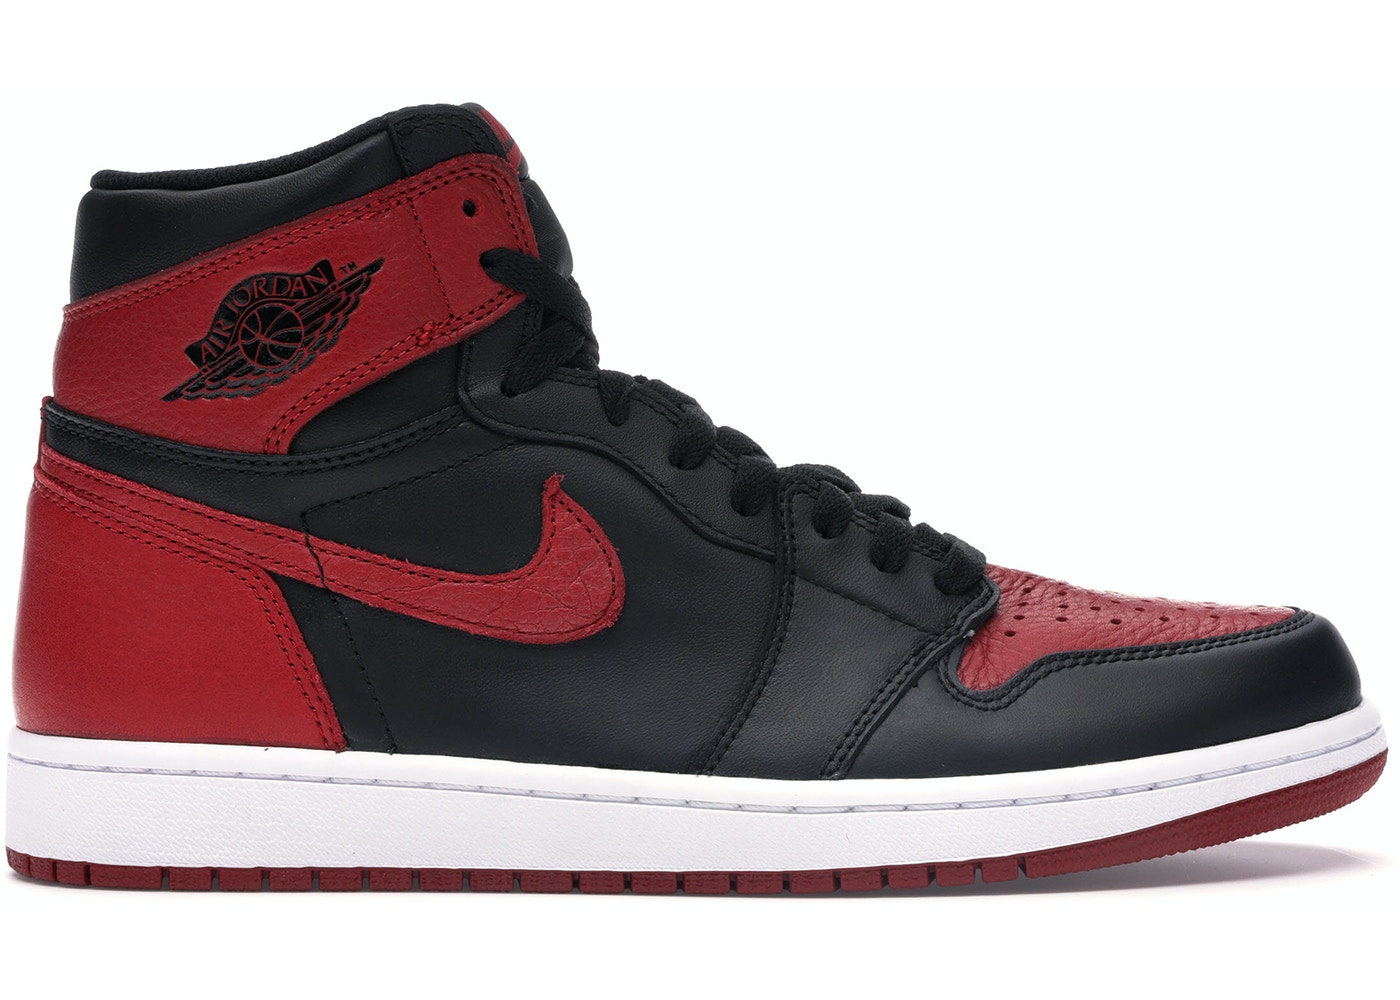 new product 4fb91 80c00 Jordan 1 Retro Bred